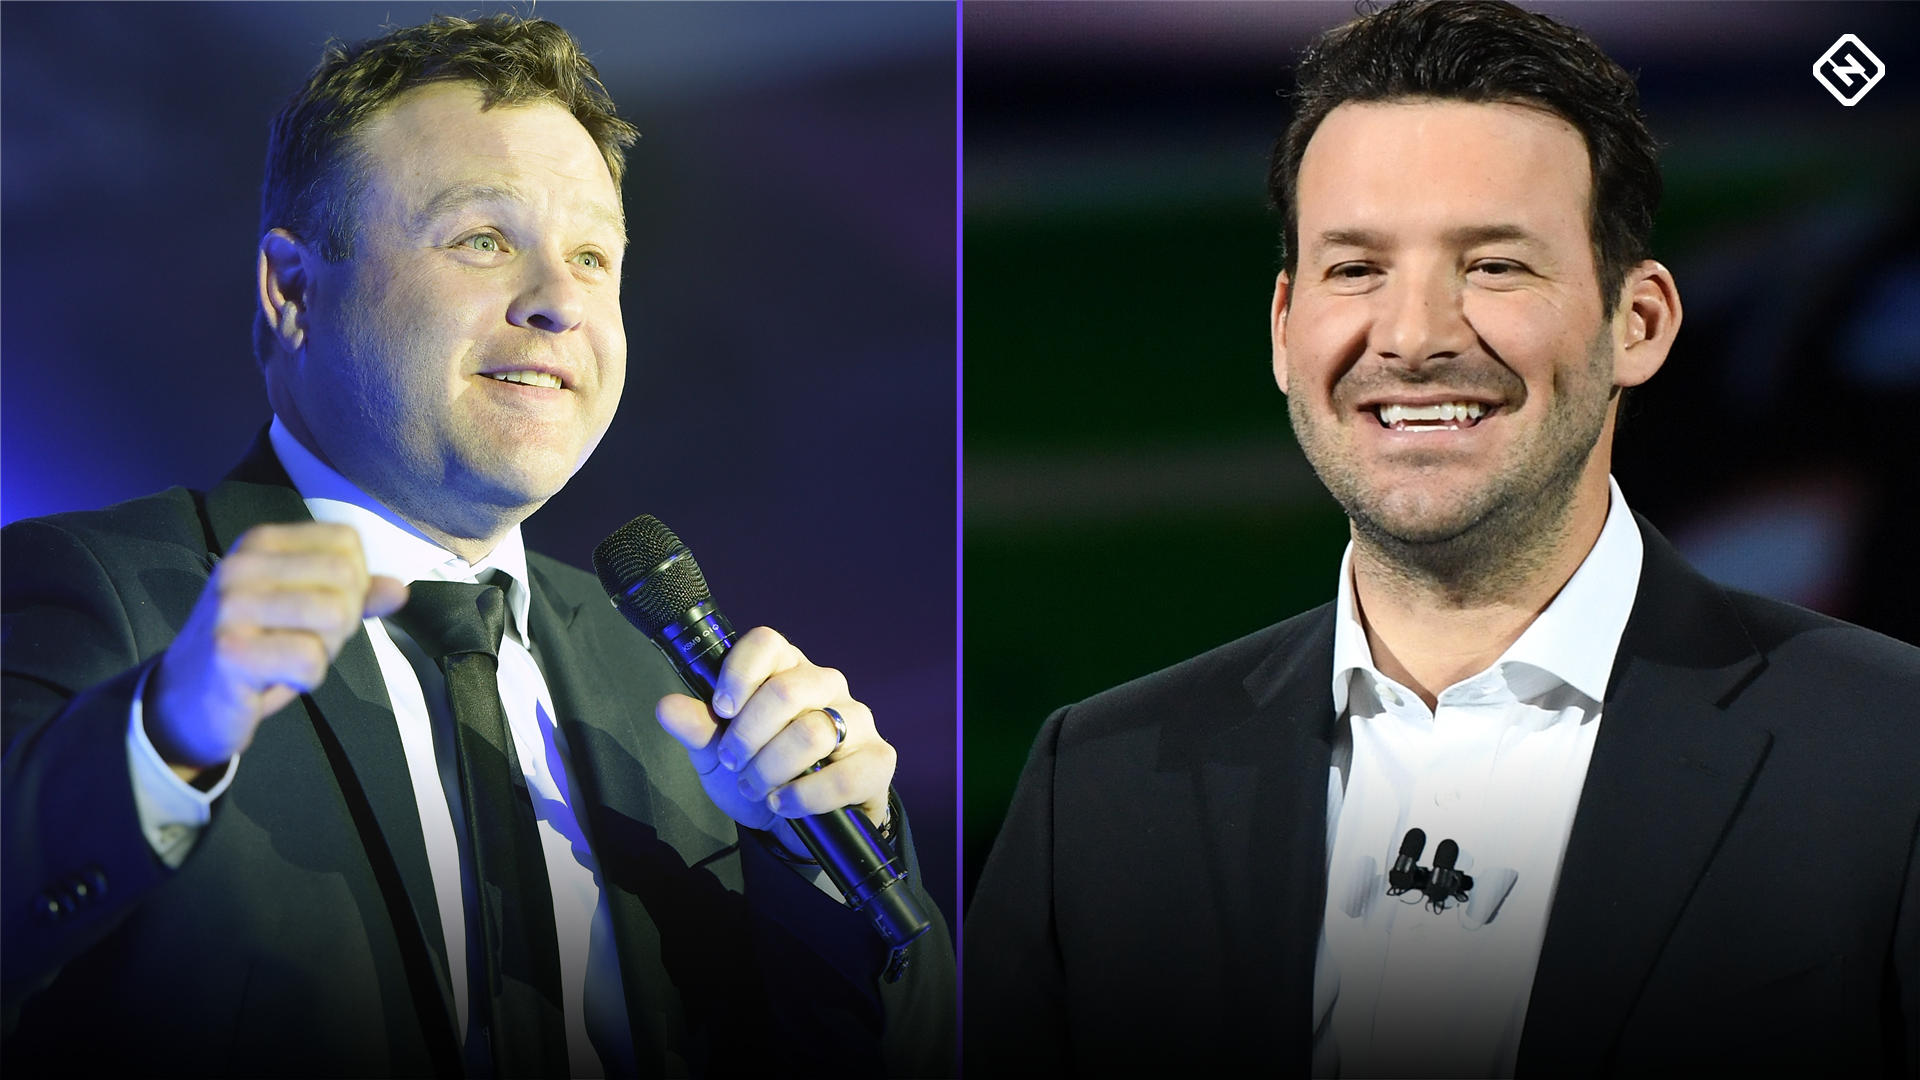 Frank Caliendo's impression of Tony Romo couldn't be more perfect